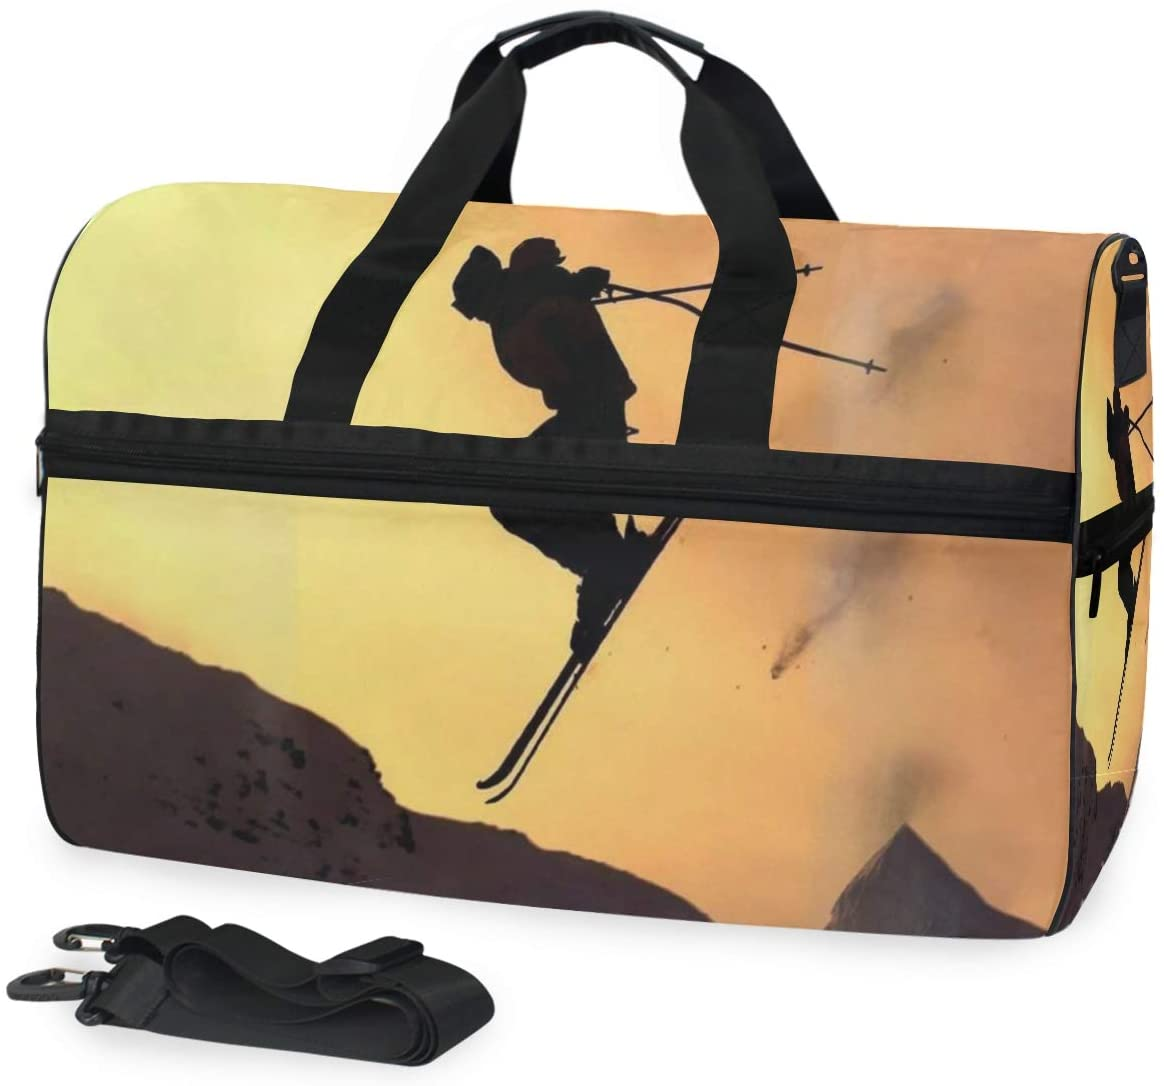 SLHFPX Duffle Bag Alpine Skiing Gym Bag with Shoe Compartment Sport Bag for Men Women